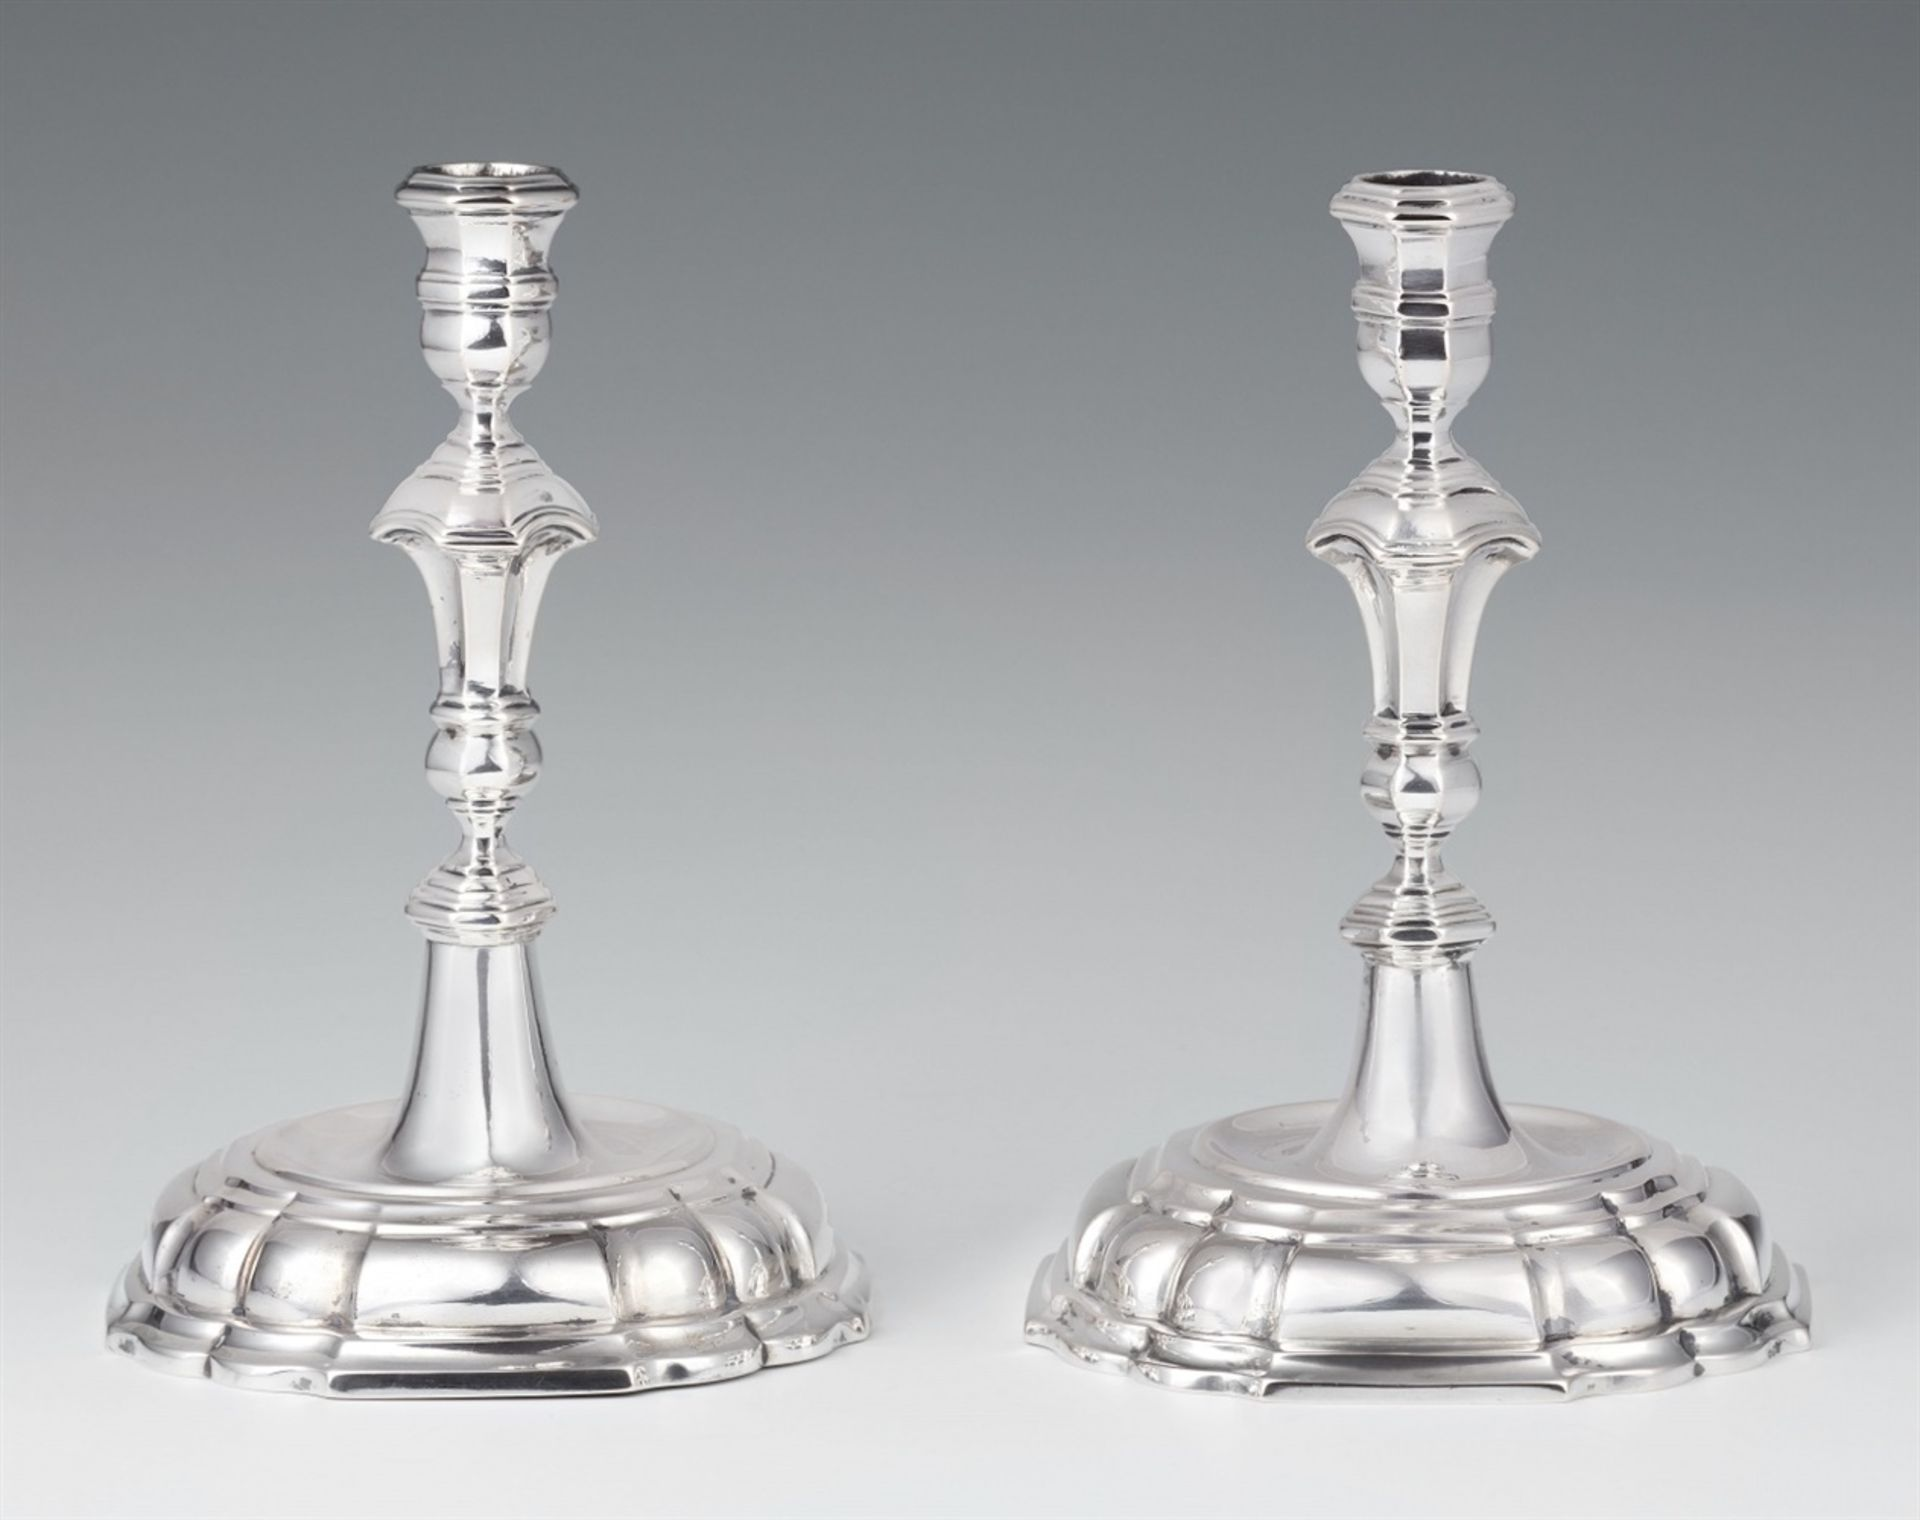 Los 739 - A pair of Lower Saxon silver candlesticksSilver. Baluster-form shafts issuing from square bases.